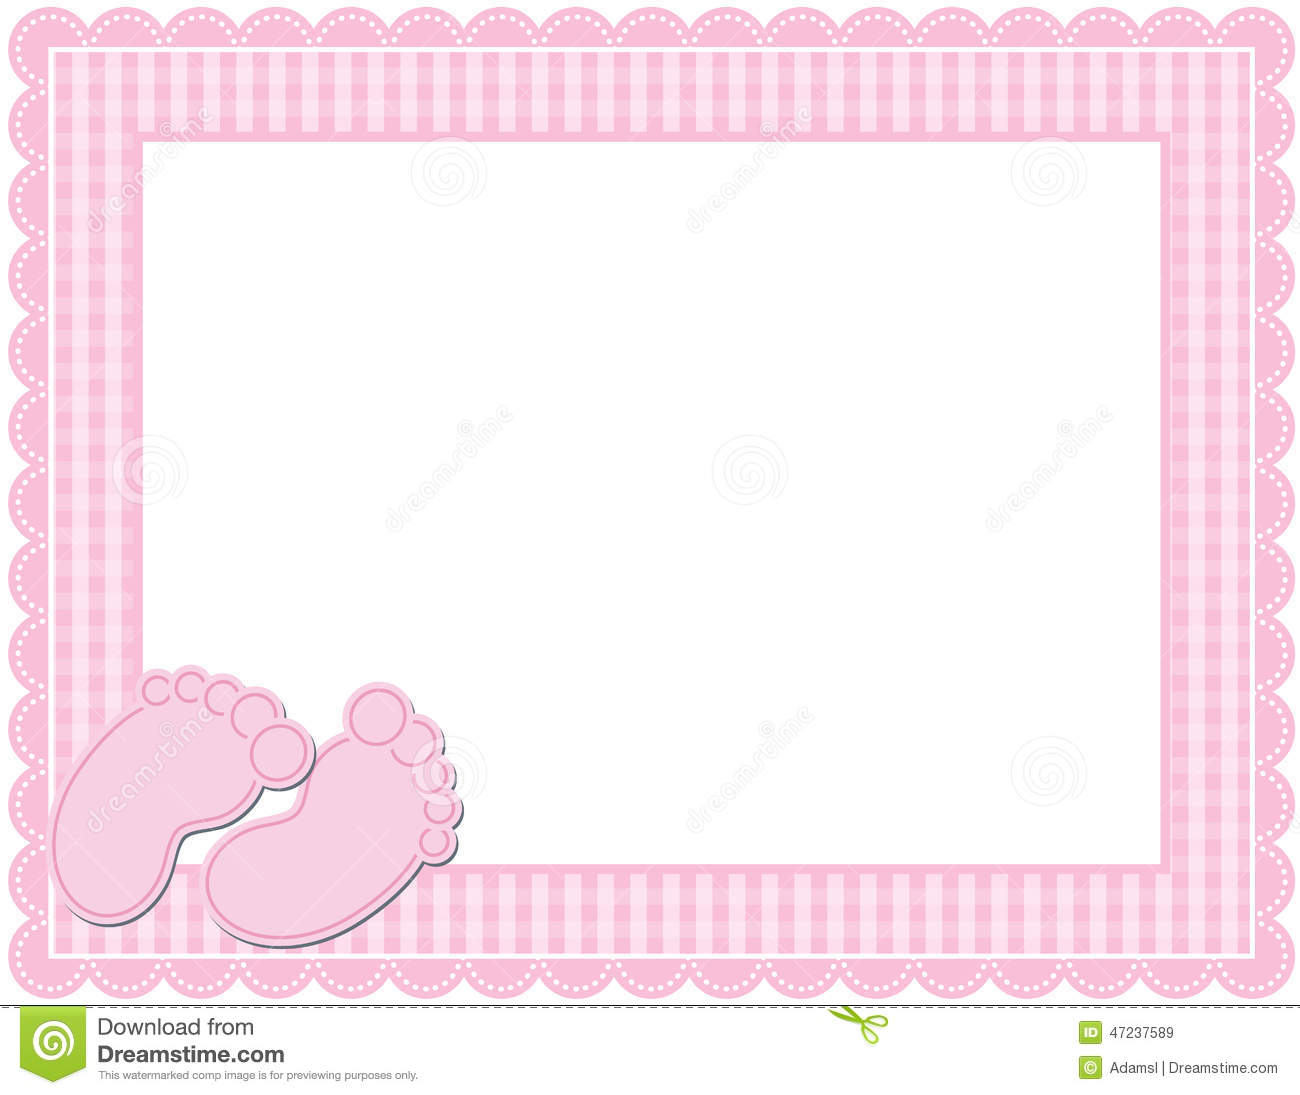 baby girl gingham frame illustration 47237589 megapixl